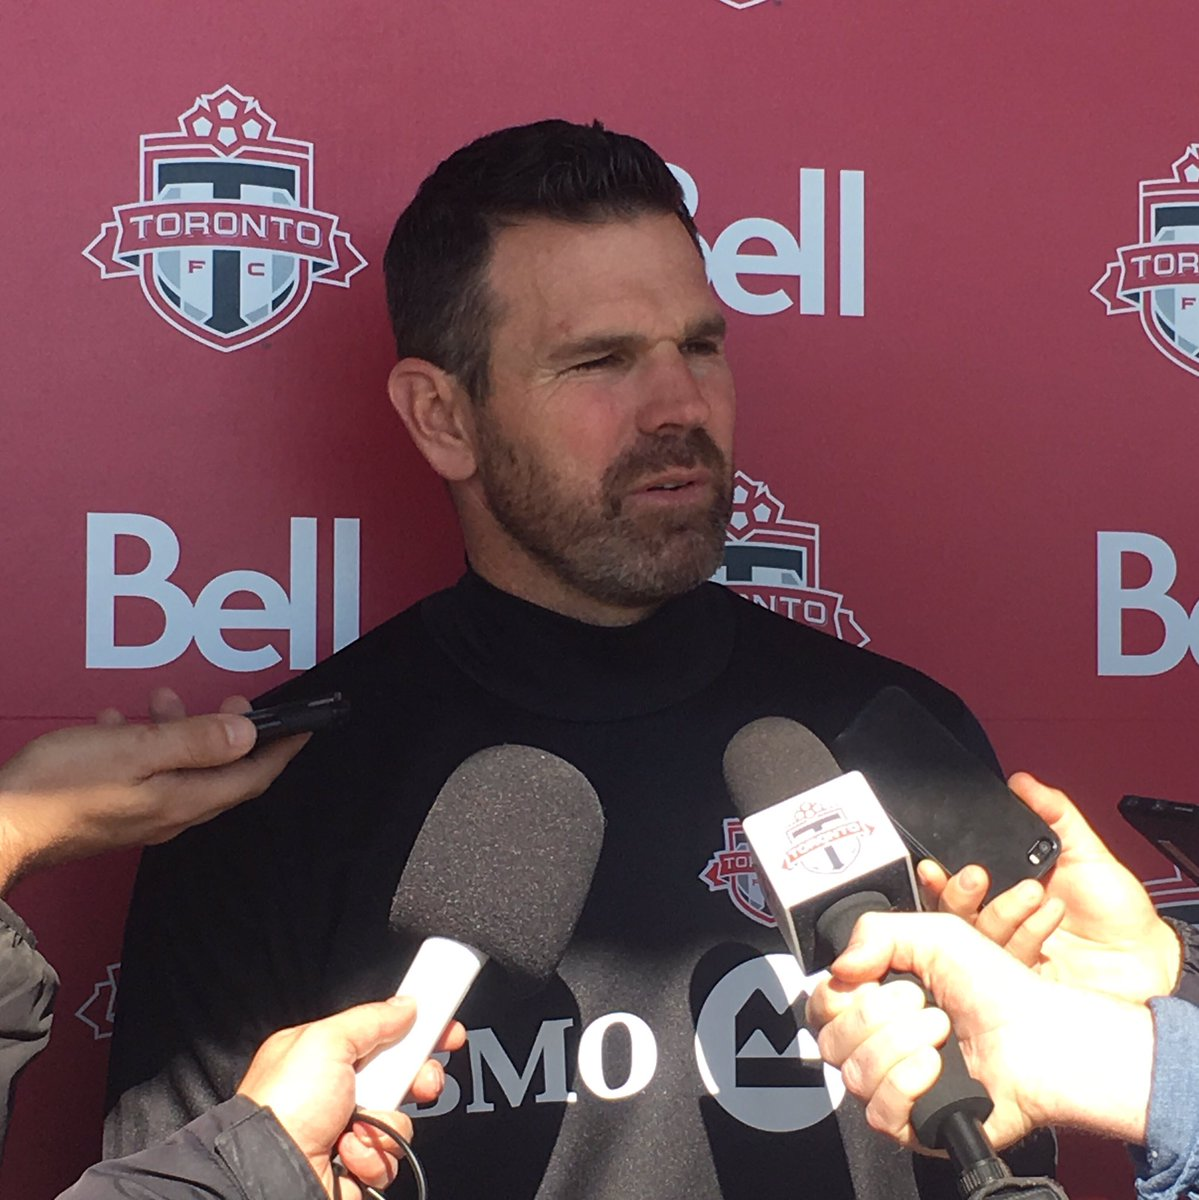 """The [all-time MLS points] record is a byproduct of our performances. This weekend will be no different."" - Greg Vanney  #TFCLive 